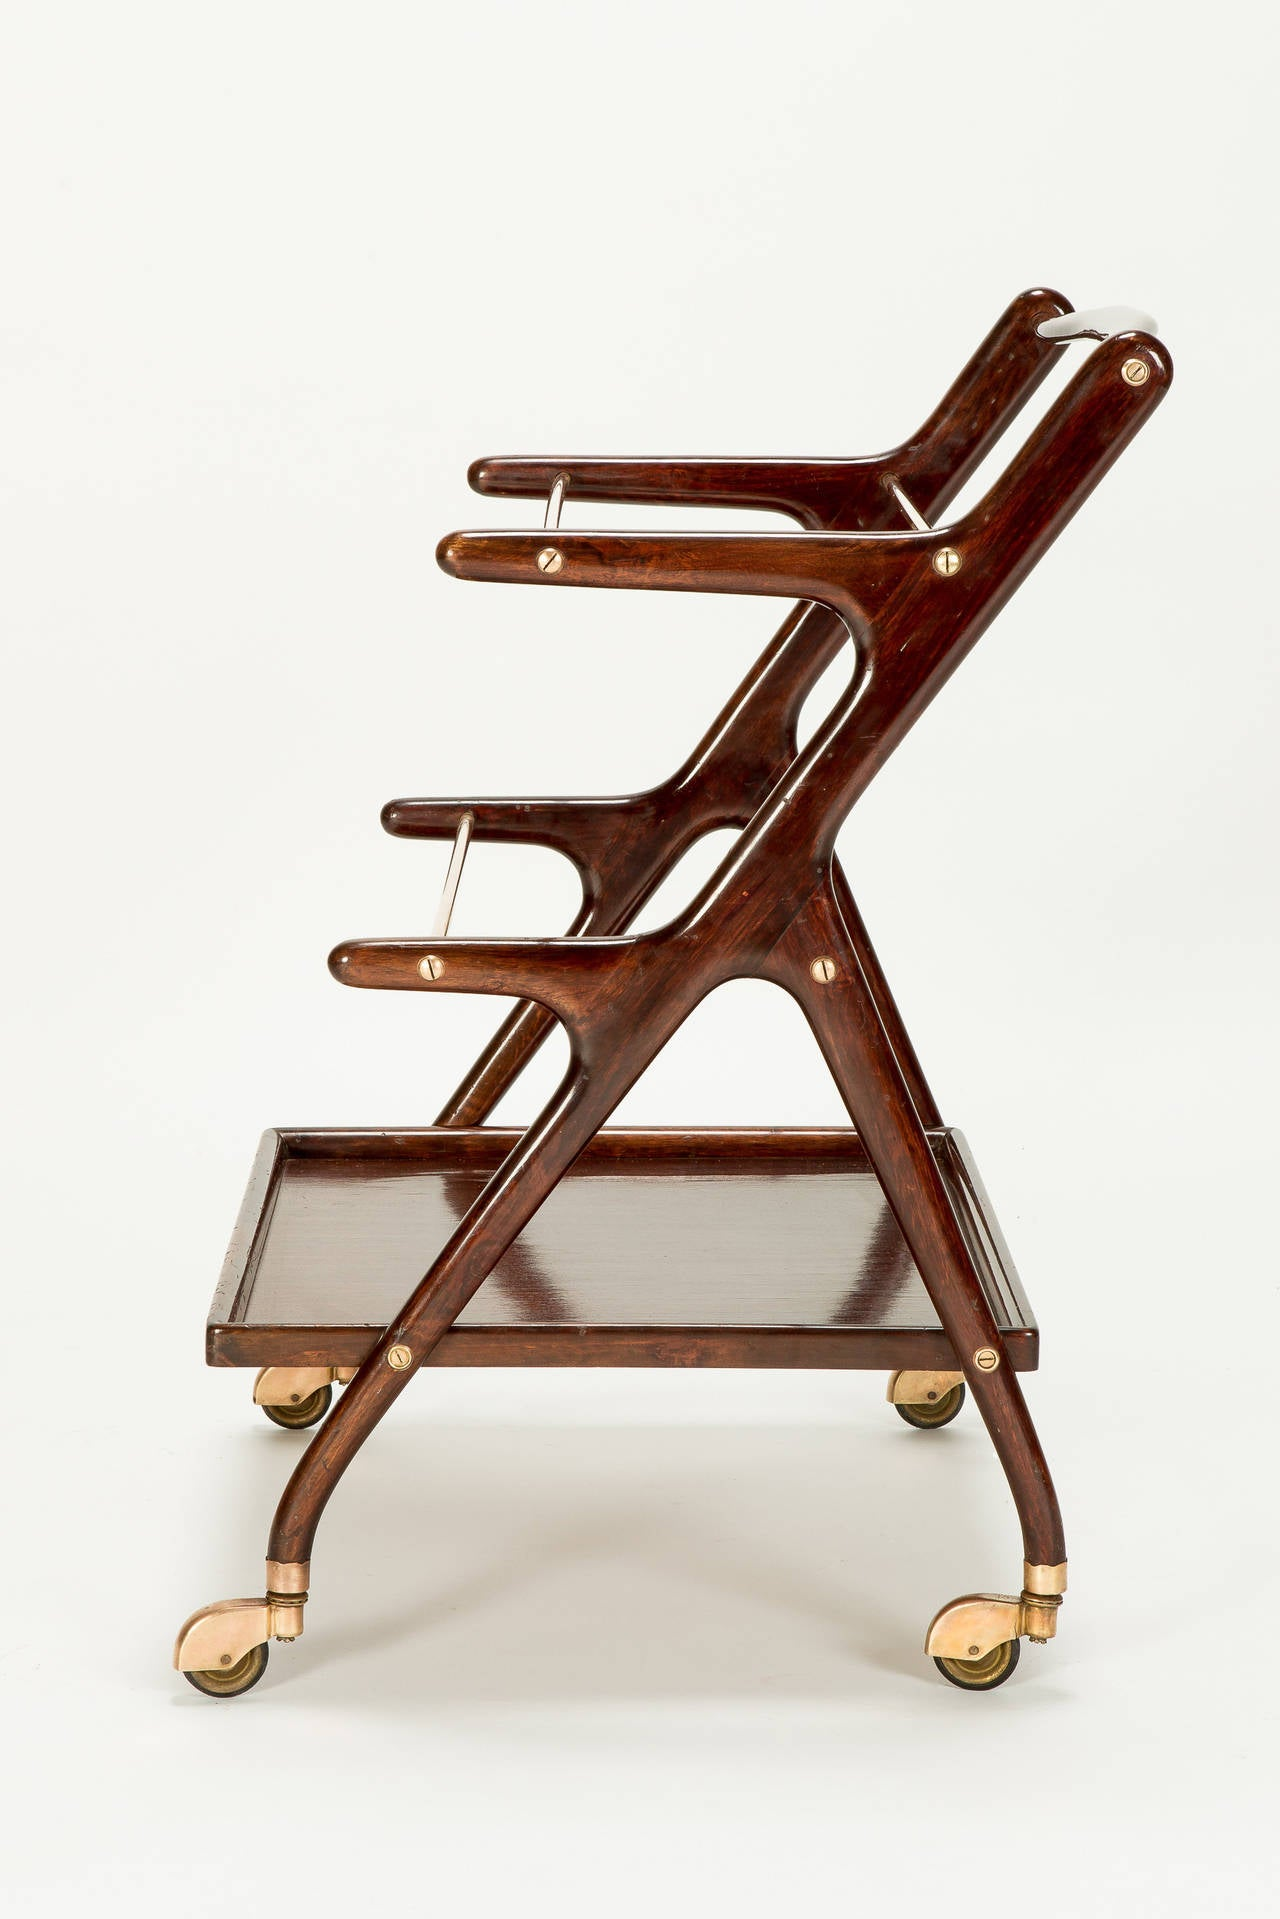 Brass Italian Mahogany Serving Trolley by Cesare Lacca, 1950s